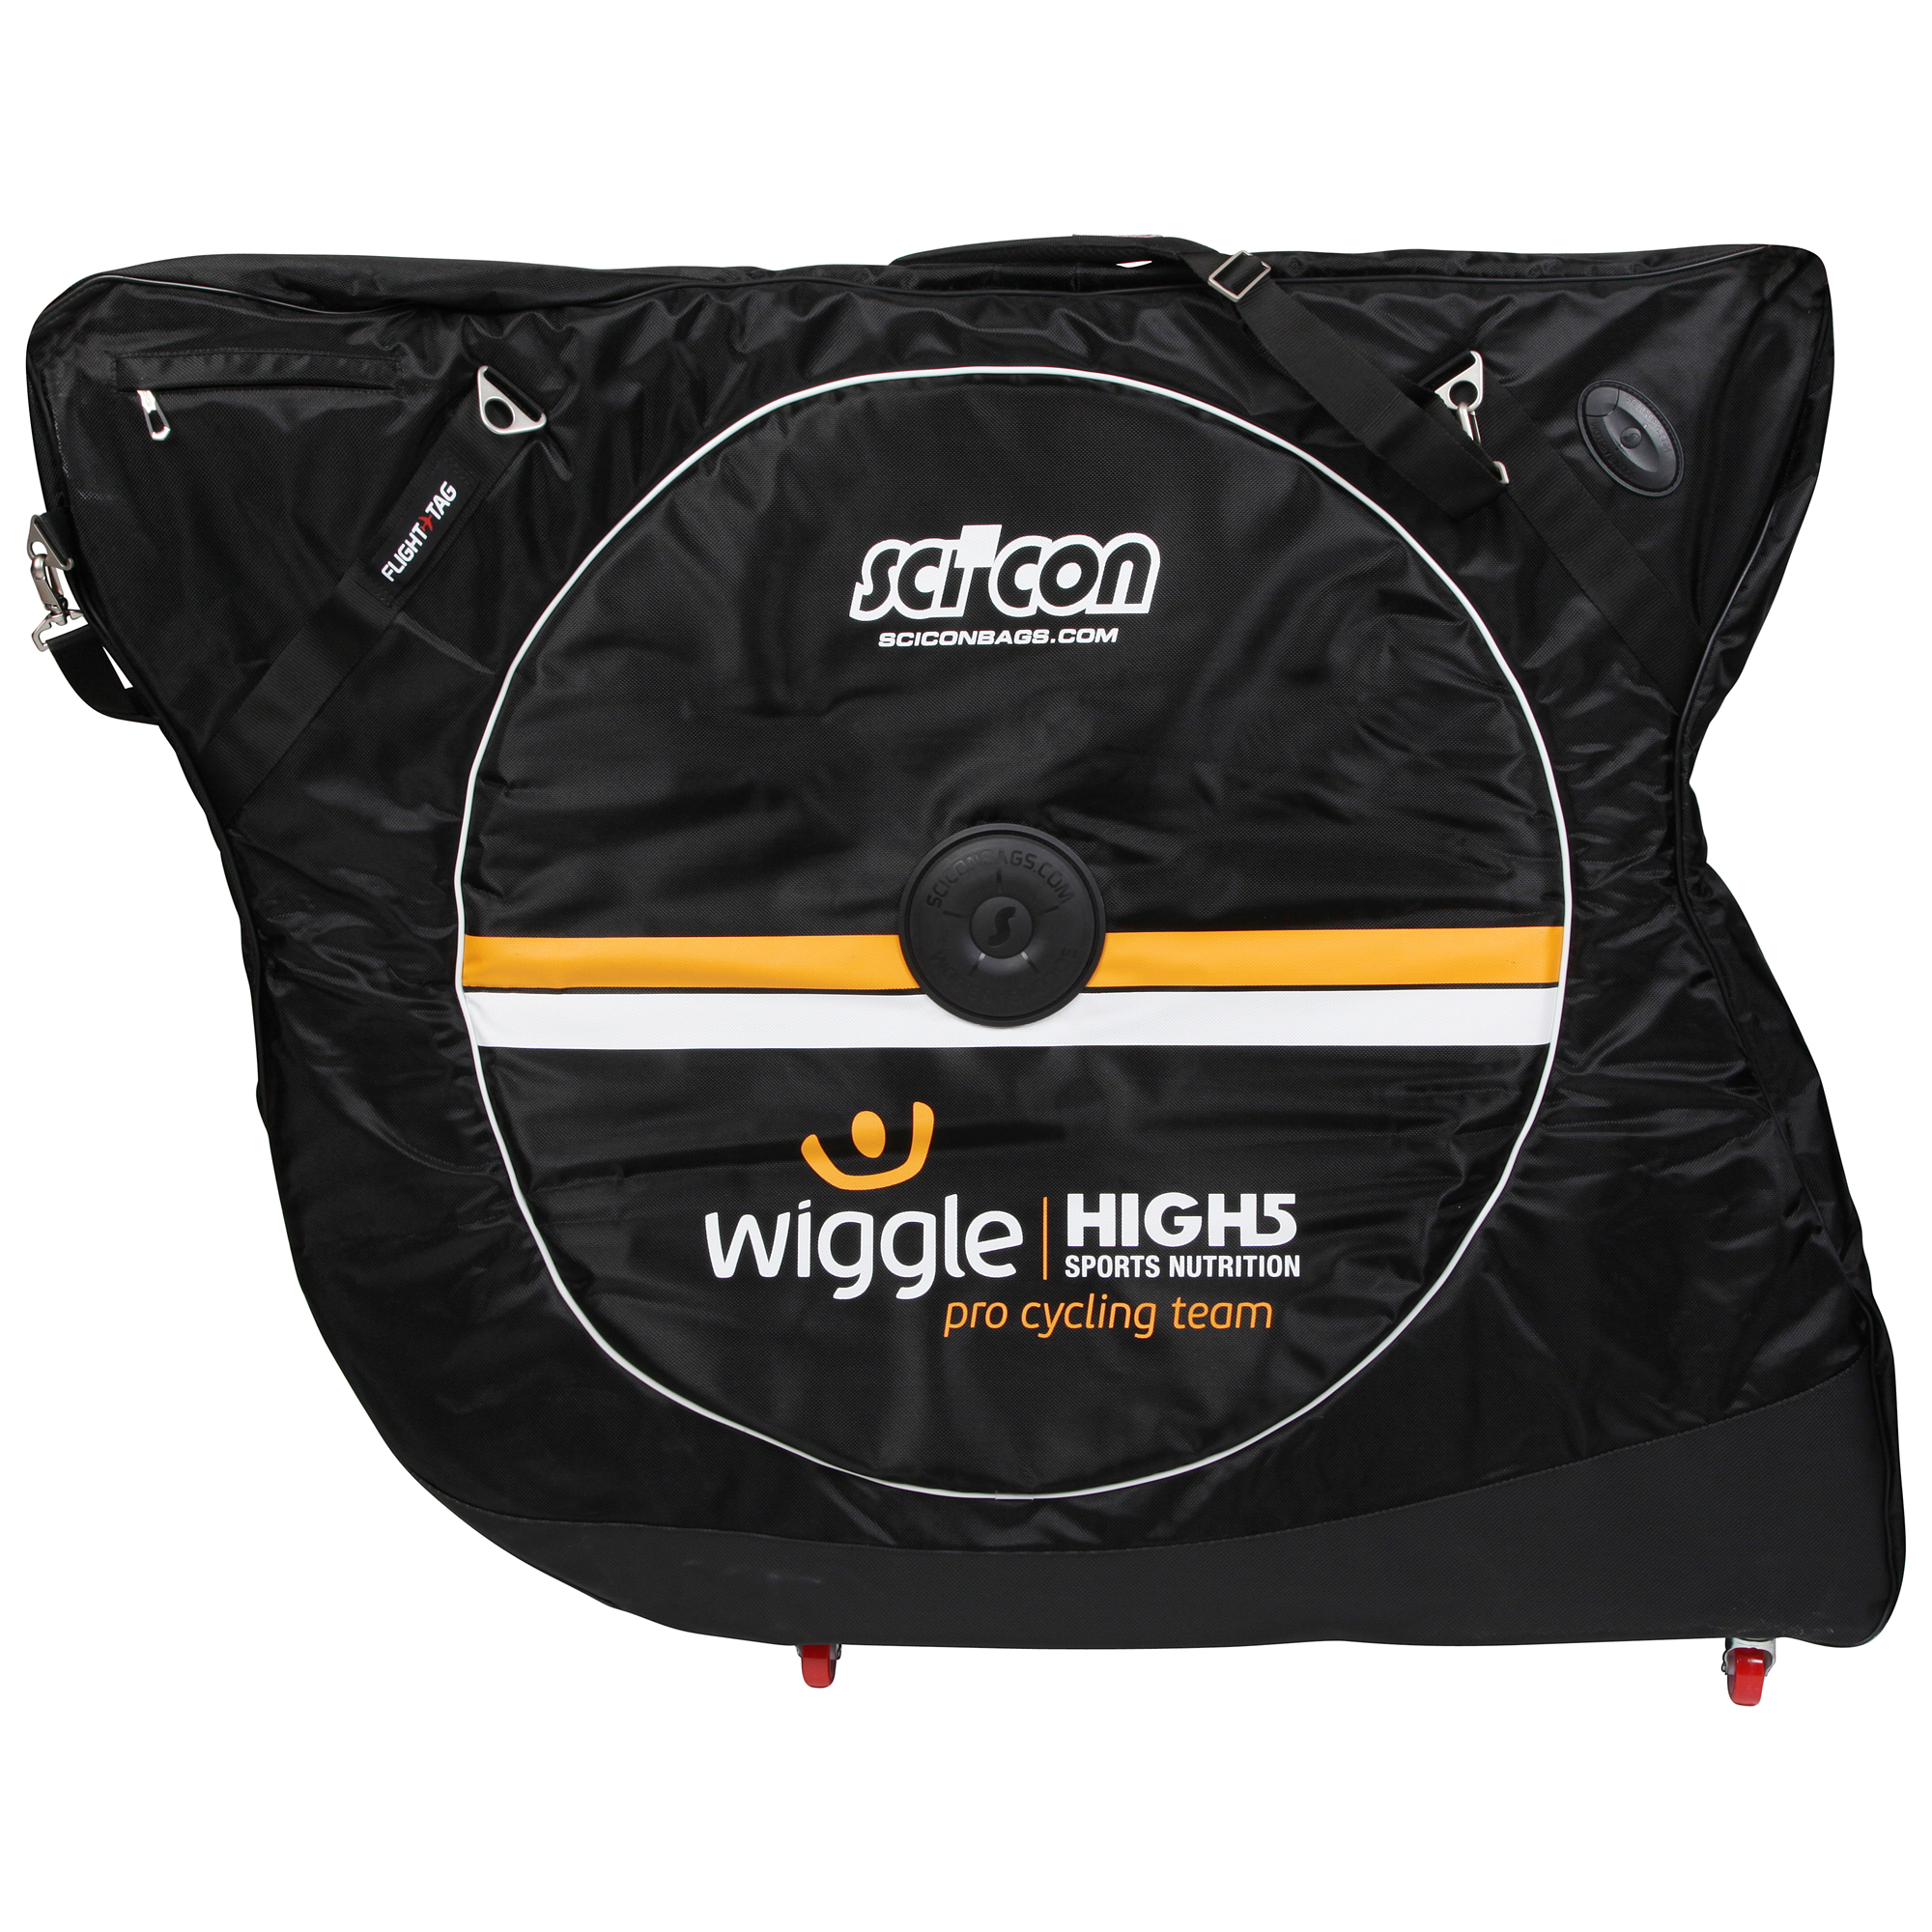 Scicon Aerocomfort 2.0 TSA Transporttaske (Wiggle High5 Team) | Cykelkuffert